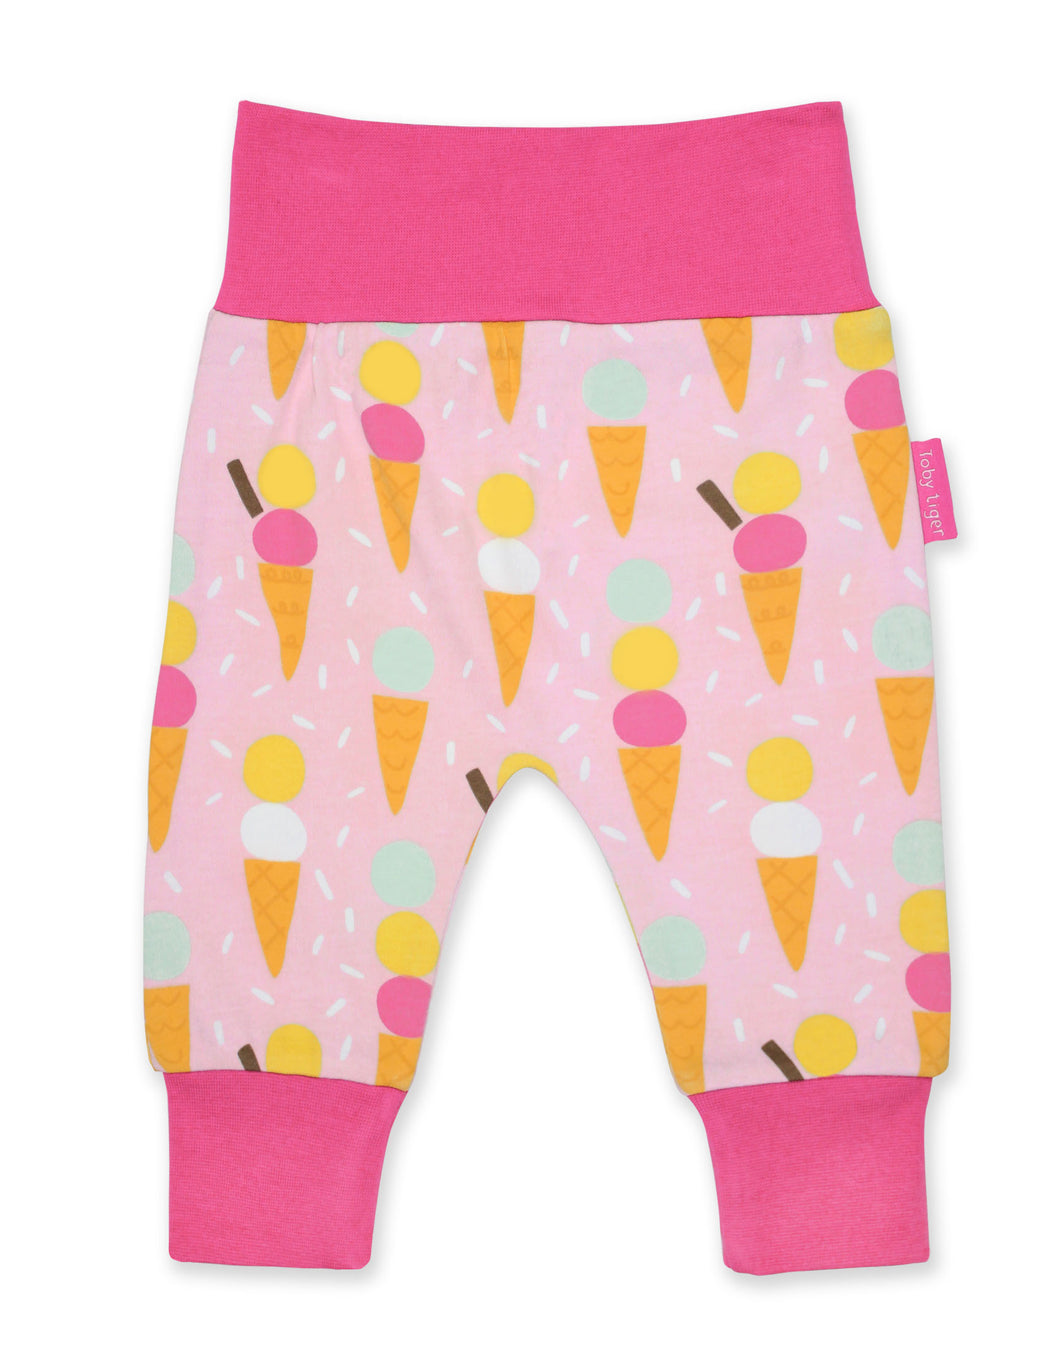 Toby Tiger Ice Cream Print Yoga Pants - Mumma and Mia